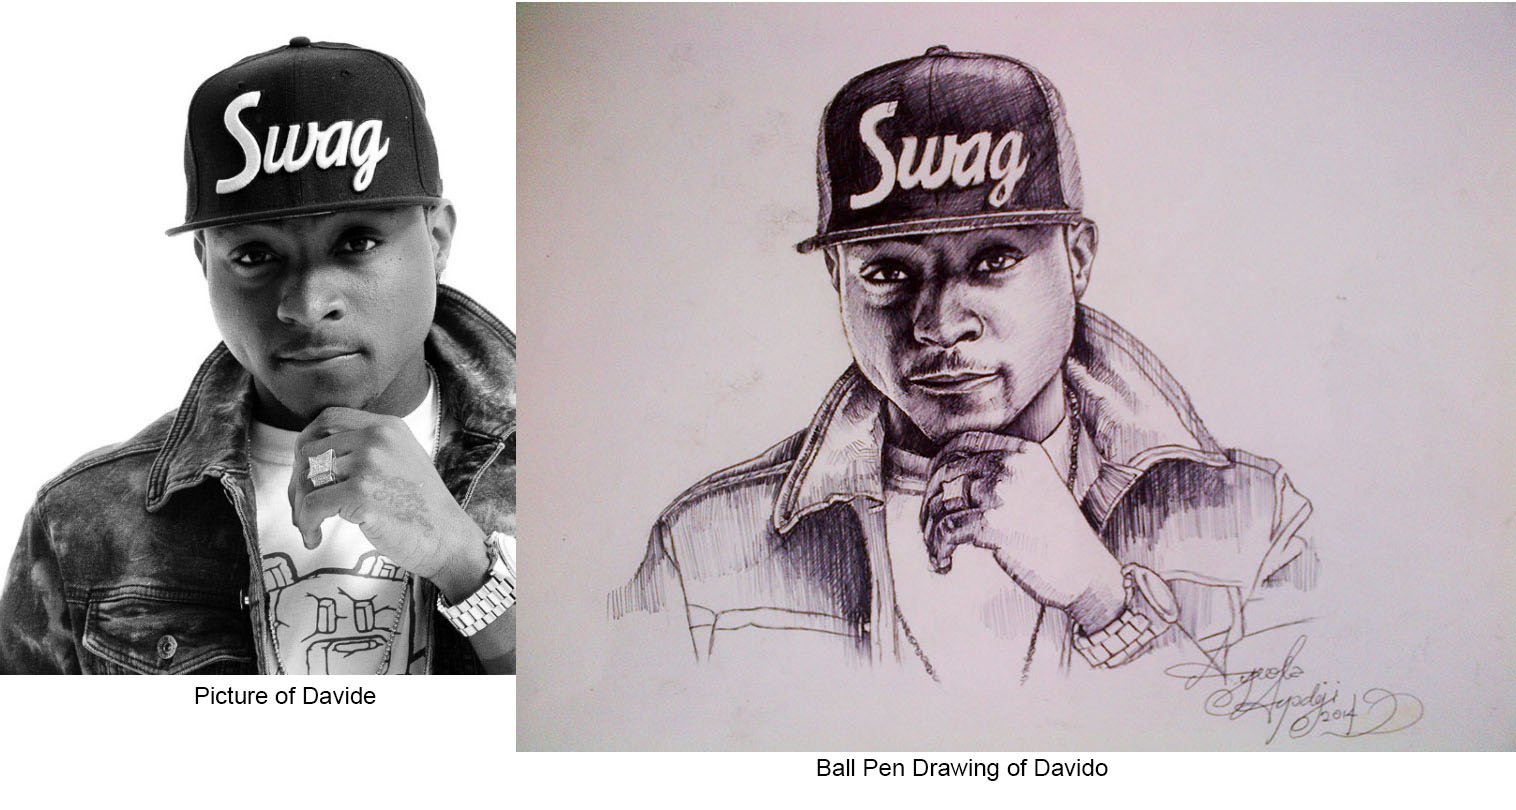 Drawn musician creative Creative Video Graphics Drawings Of